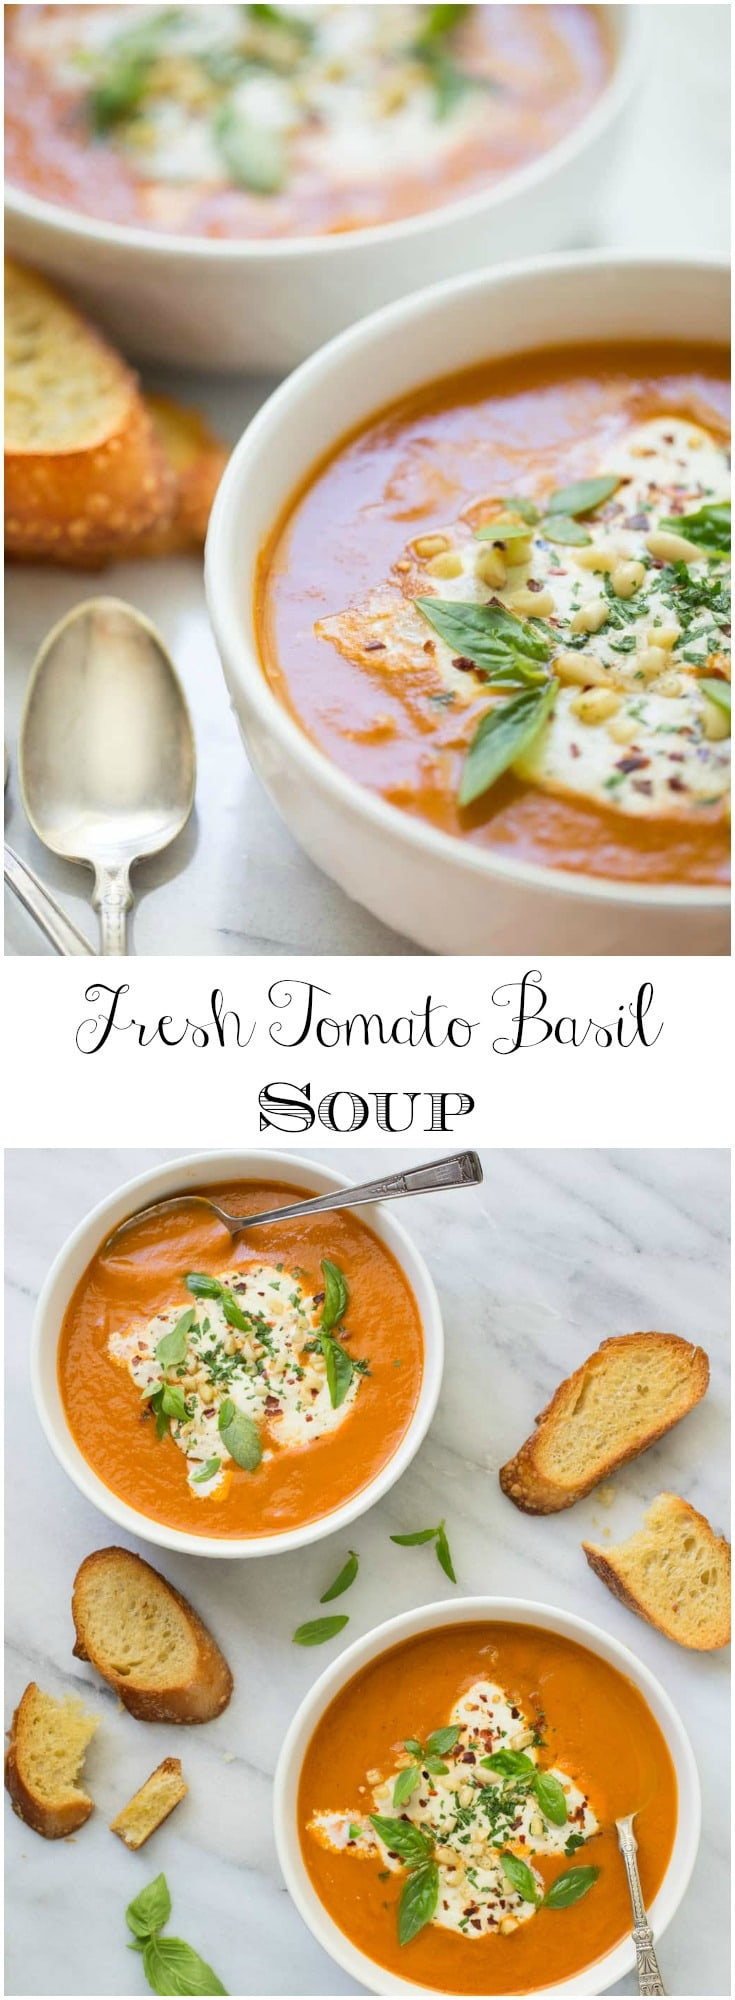 There's nothing quite like tomato soup made from fresh tomatoes and basil. Try it! You won't believe how delicious it is!